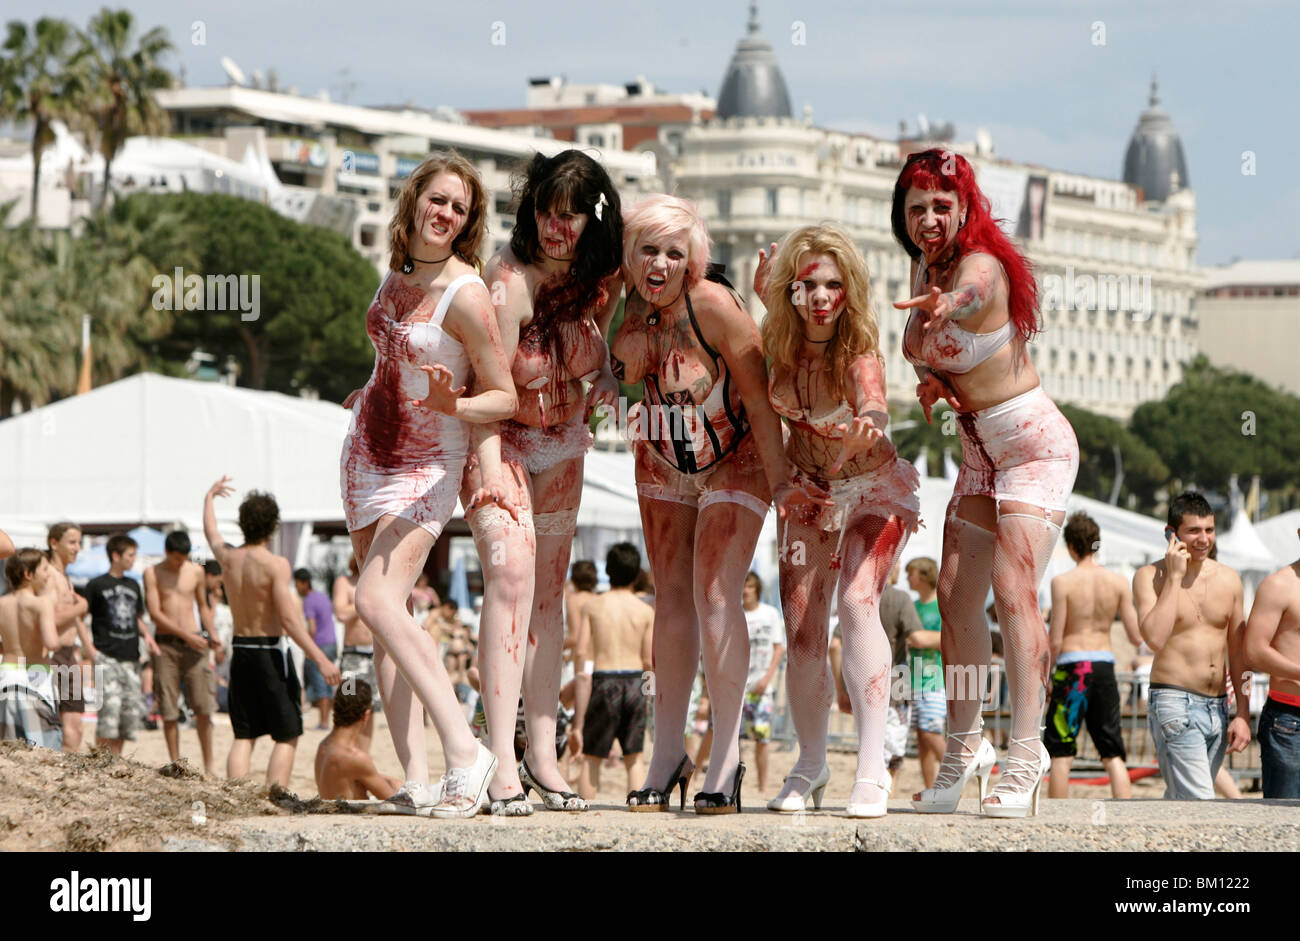 ZOMBIE WOMEN ZOMBIE WOMEN OF SATAN PR STUNT BEACH CANNES FRANCE 13 May 2010 - Stock Image